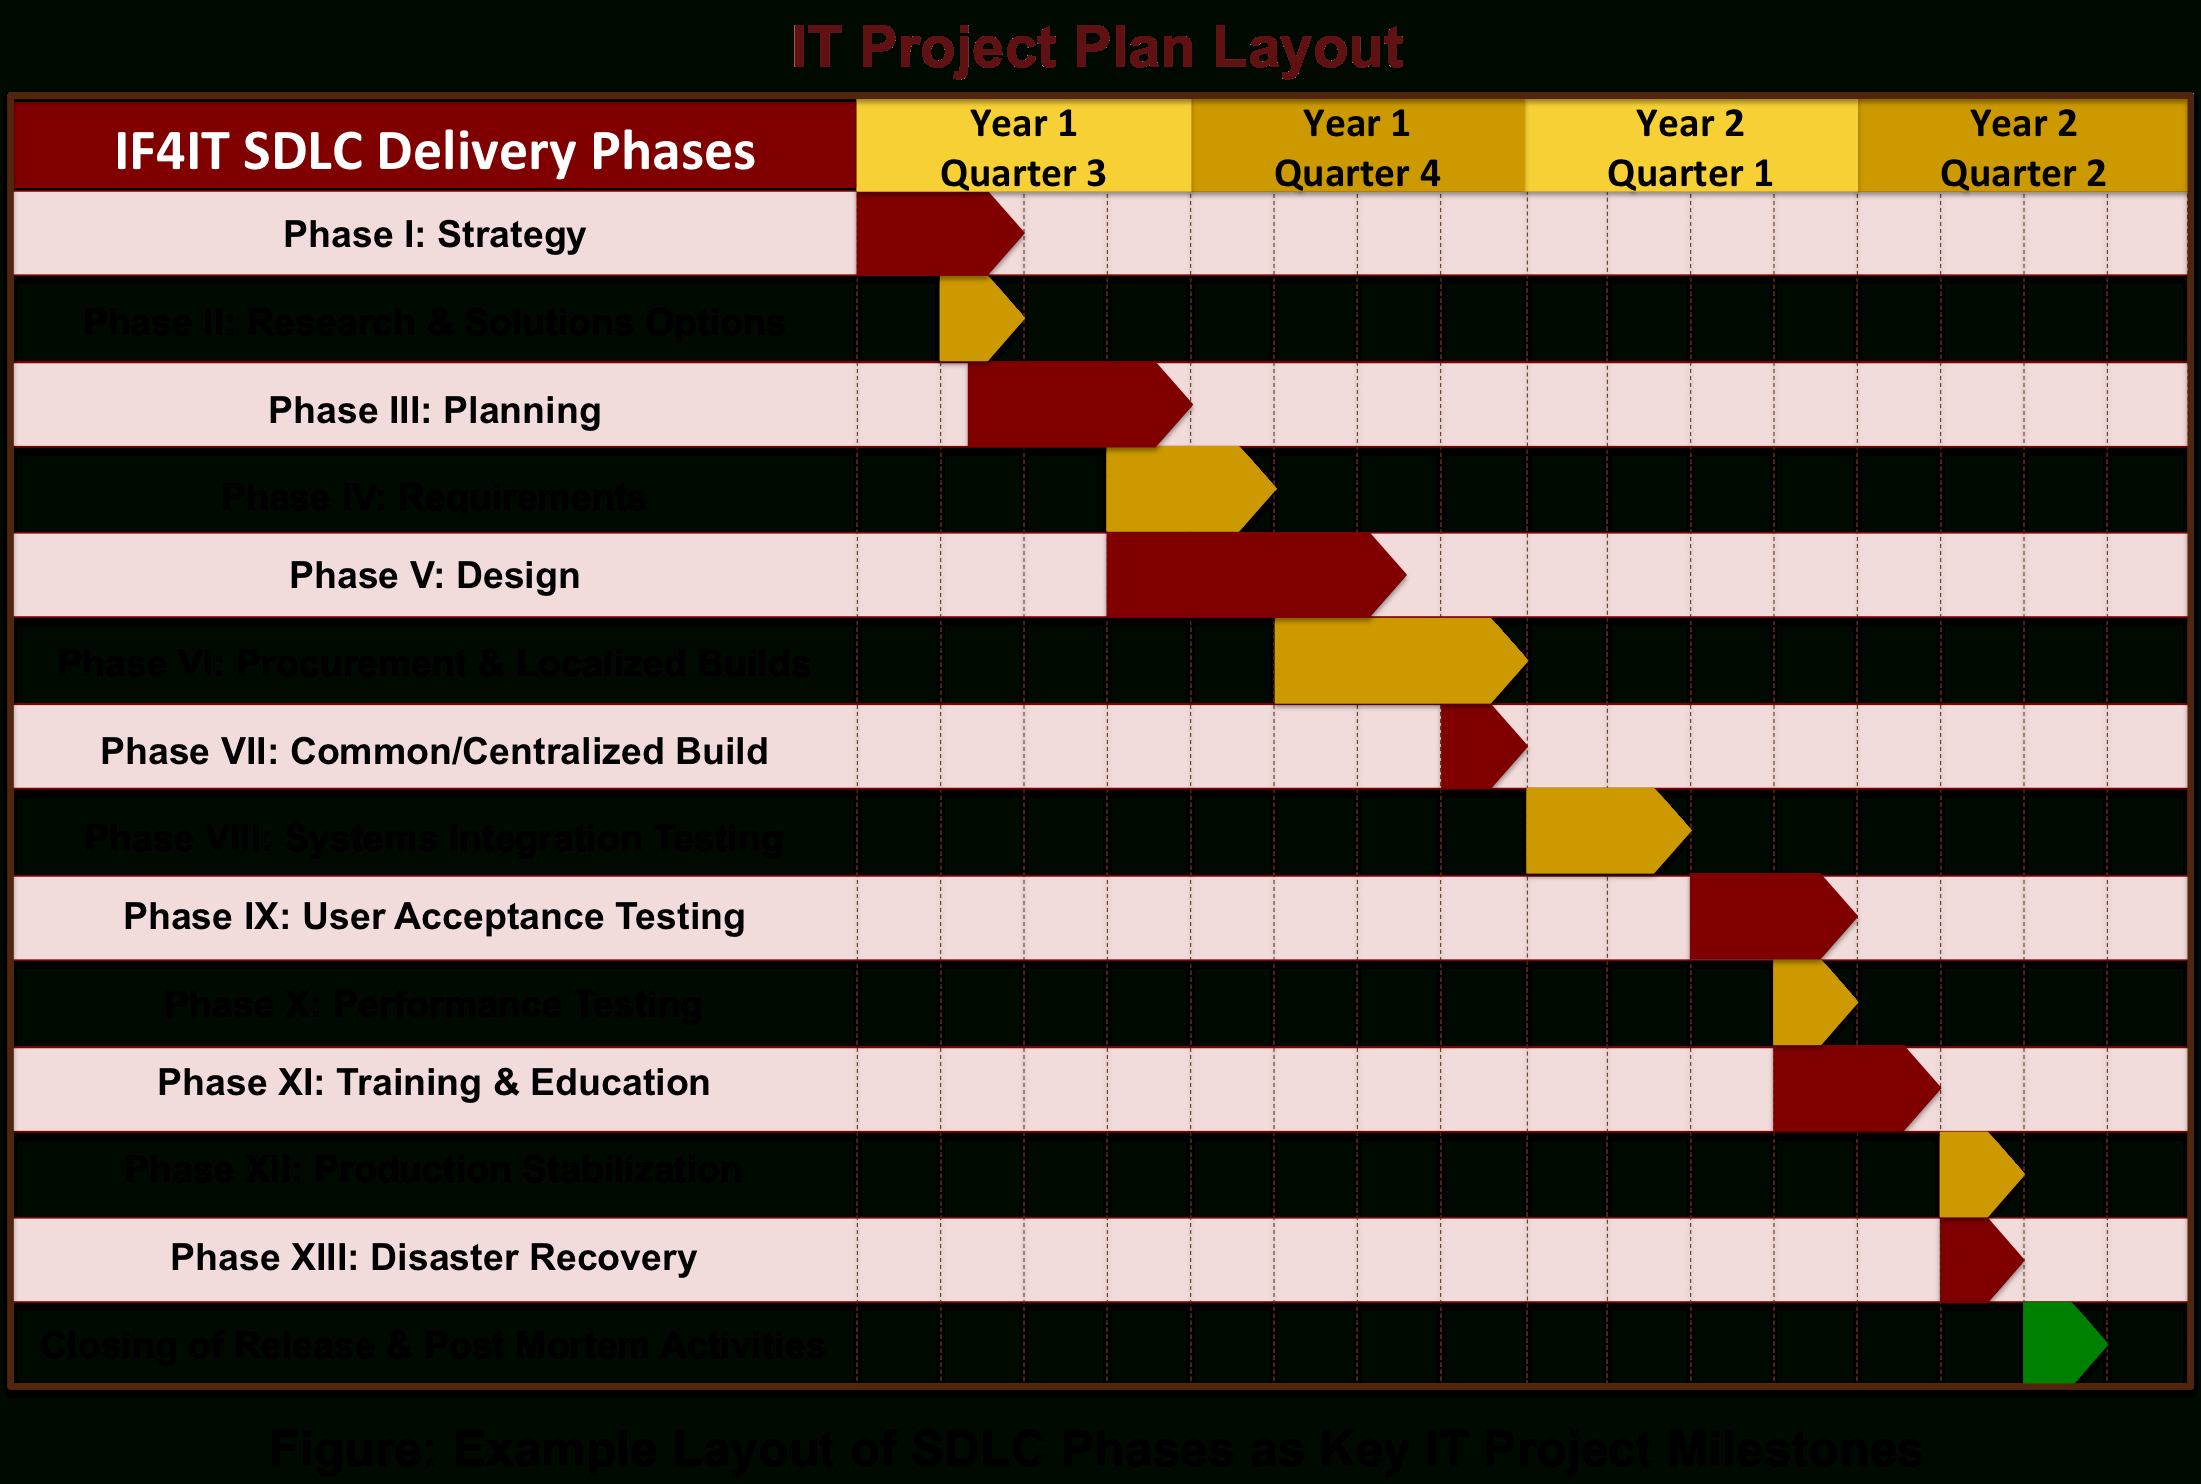 Project Plan Spreadsheet Examples Pertaining To Sdlc Based It Project Plan Layout  Project Plan Templates